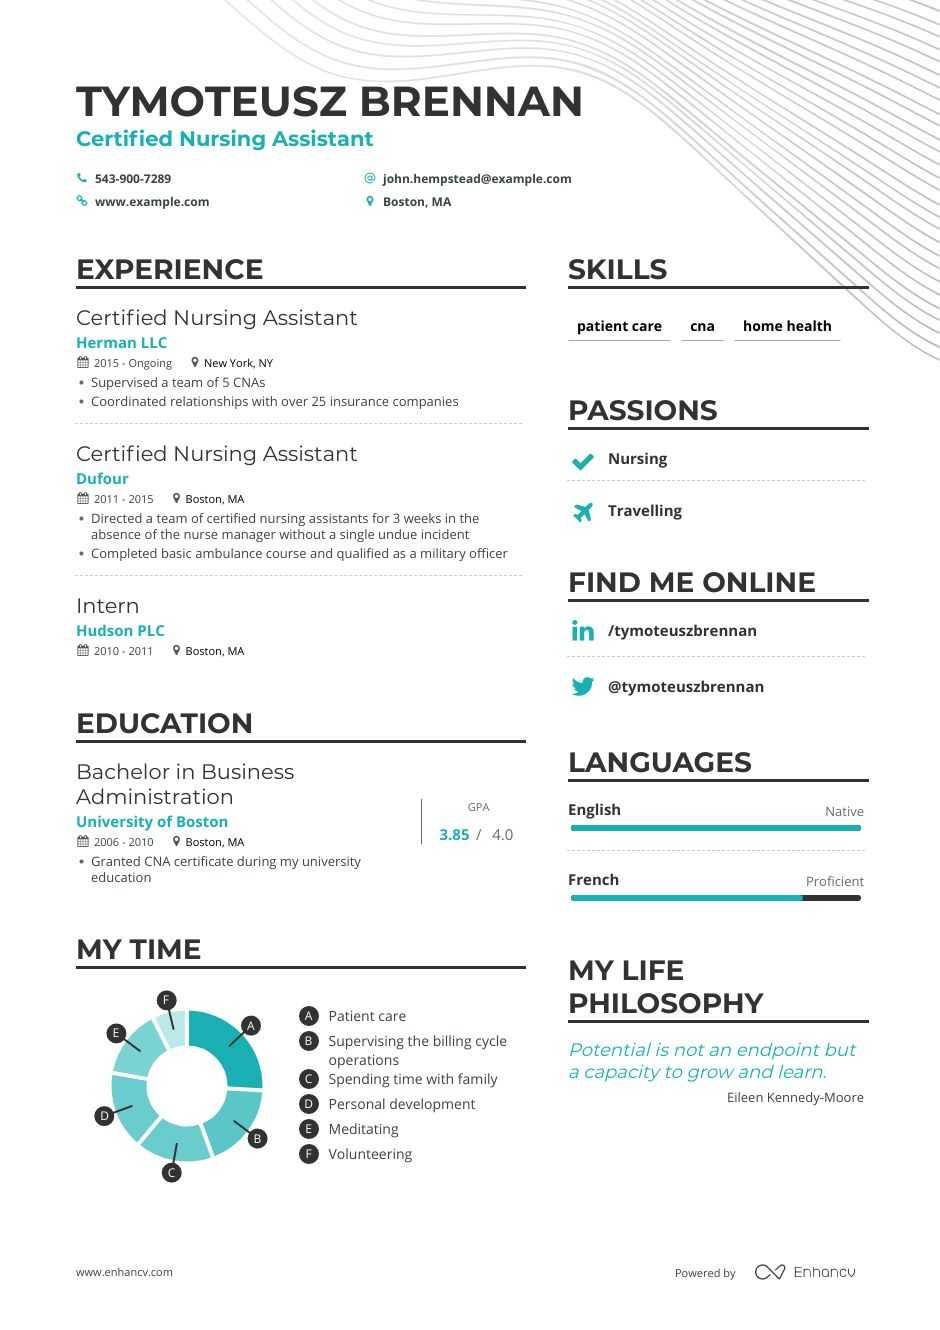 certified nursing assistant resume samples and writing guide for enhancv example perfect Resume Certified Nursing Assistant Resume Example